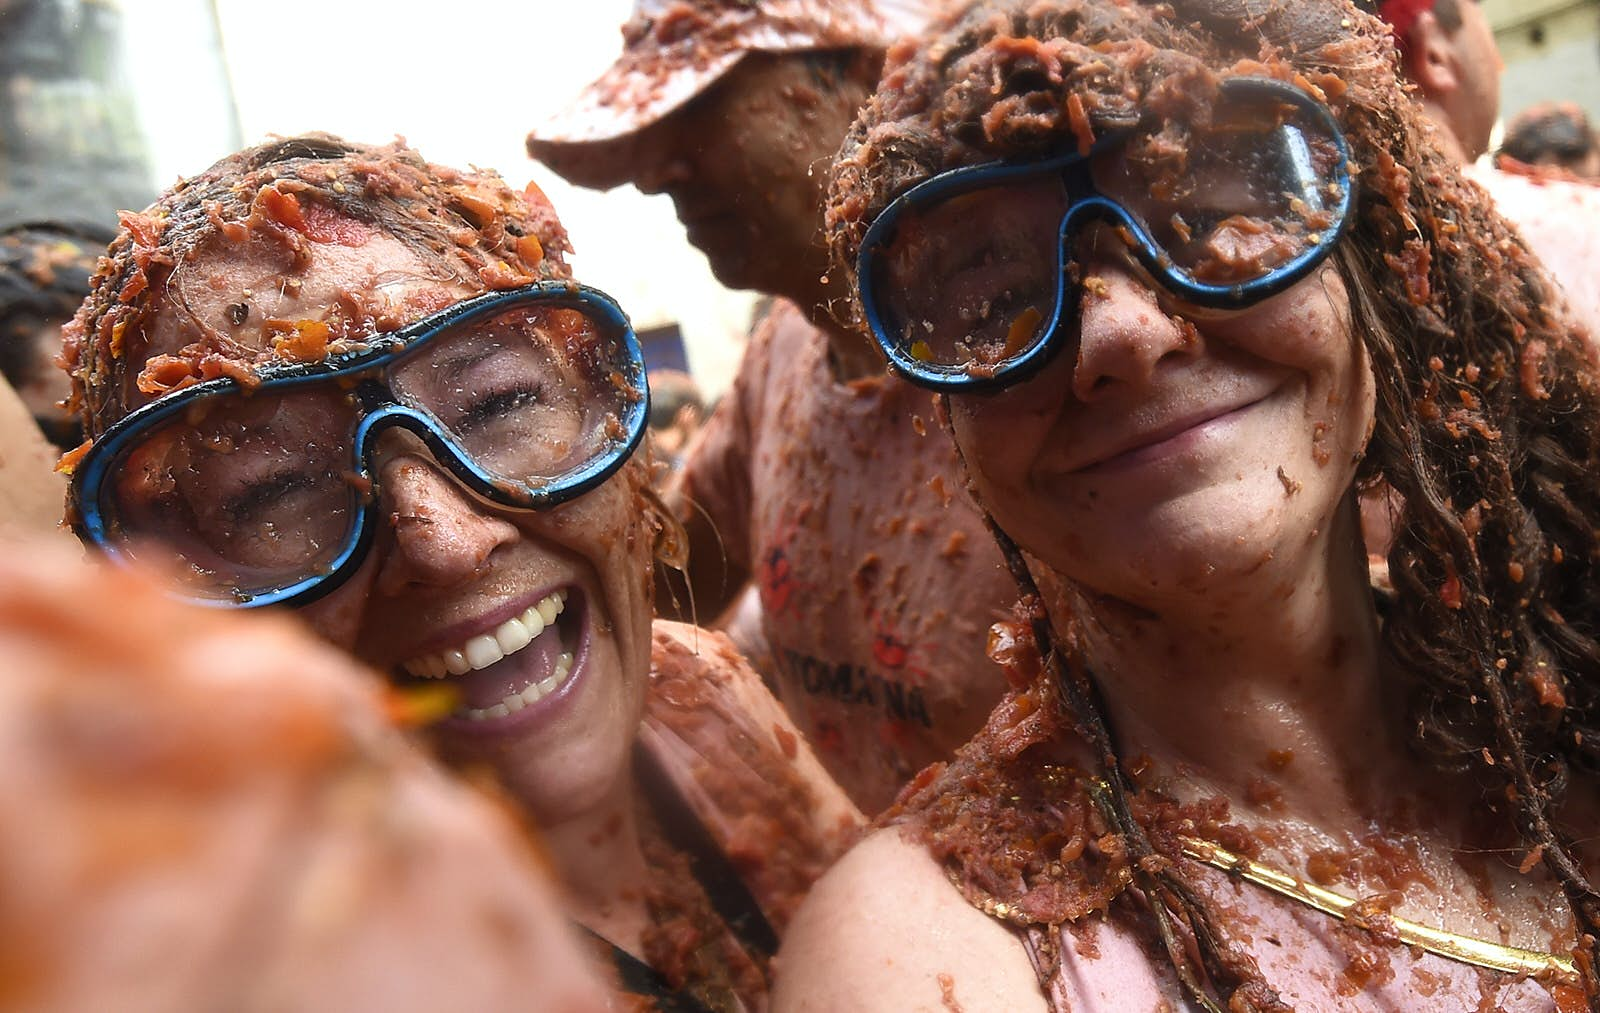 "Two revellers sporting diving masks pose covered up with smashed tomatoes, during the 'Tomatina' festival in Bunol, on August 29, 2018. - This iconic annual fiesta that takes place on the last Wednesday of August and has been billed as ""the world's biggest food fight"". Two festival goers wear snorkelling goggles to protect their eyes from the tomato pulp"